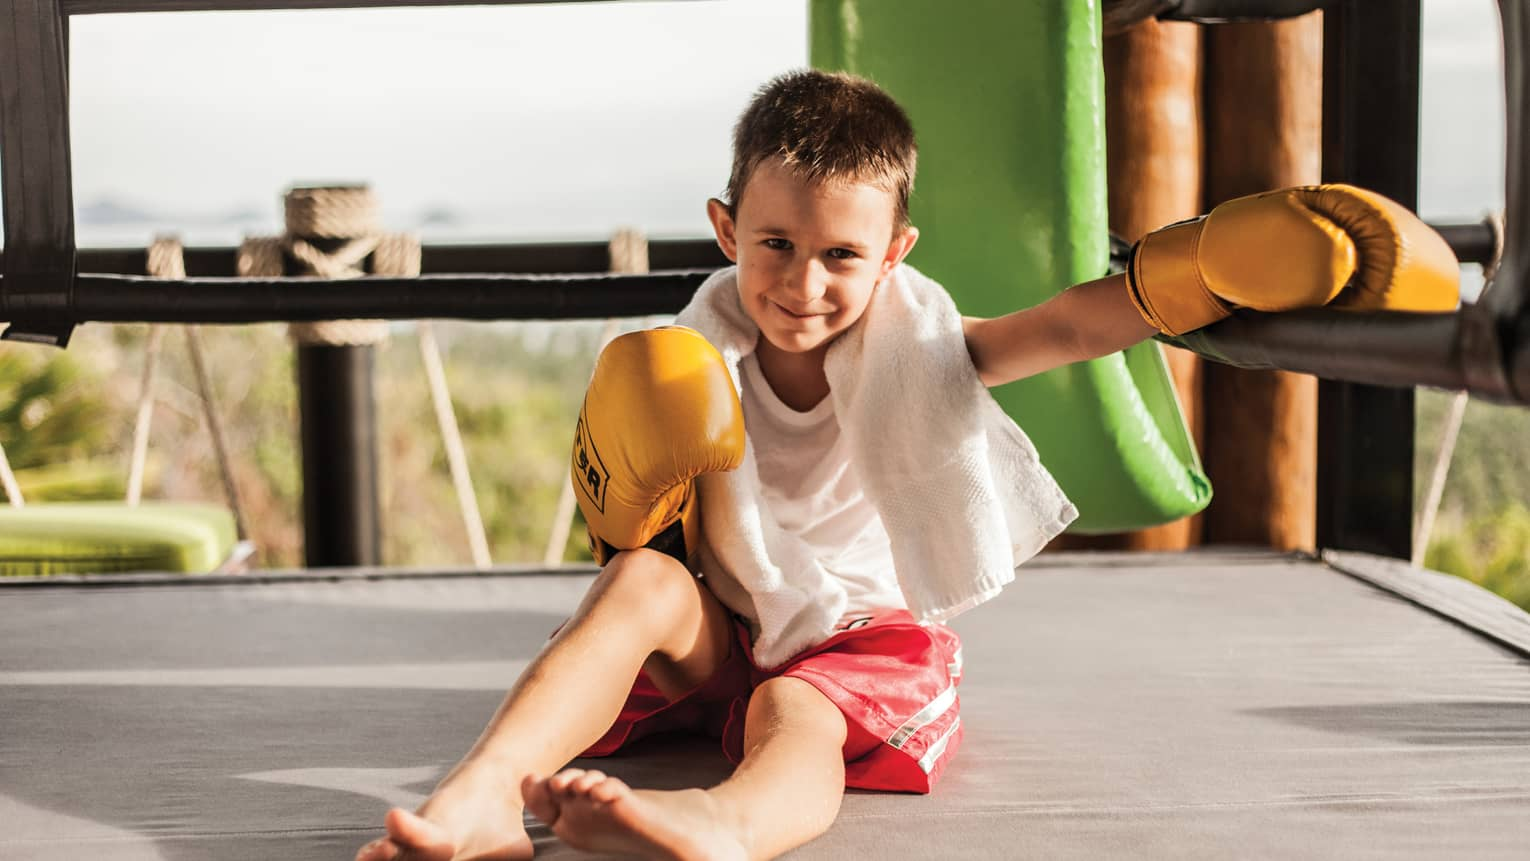 Smiling young boy with white towel around neck, boxing gloves sits in sunny outdoor ring